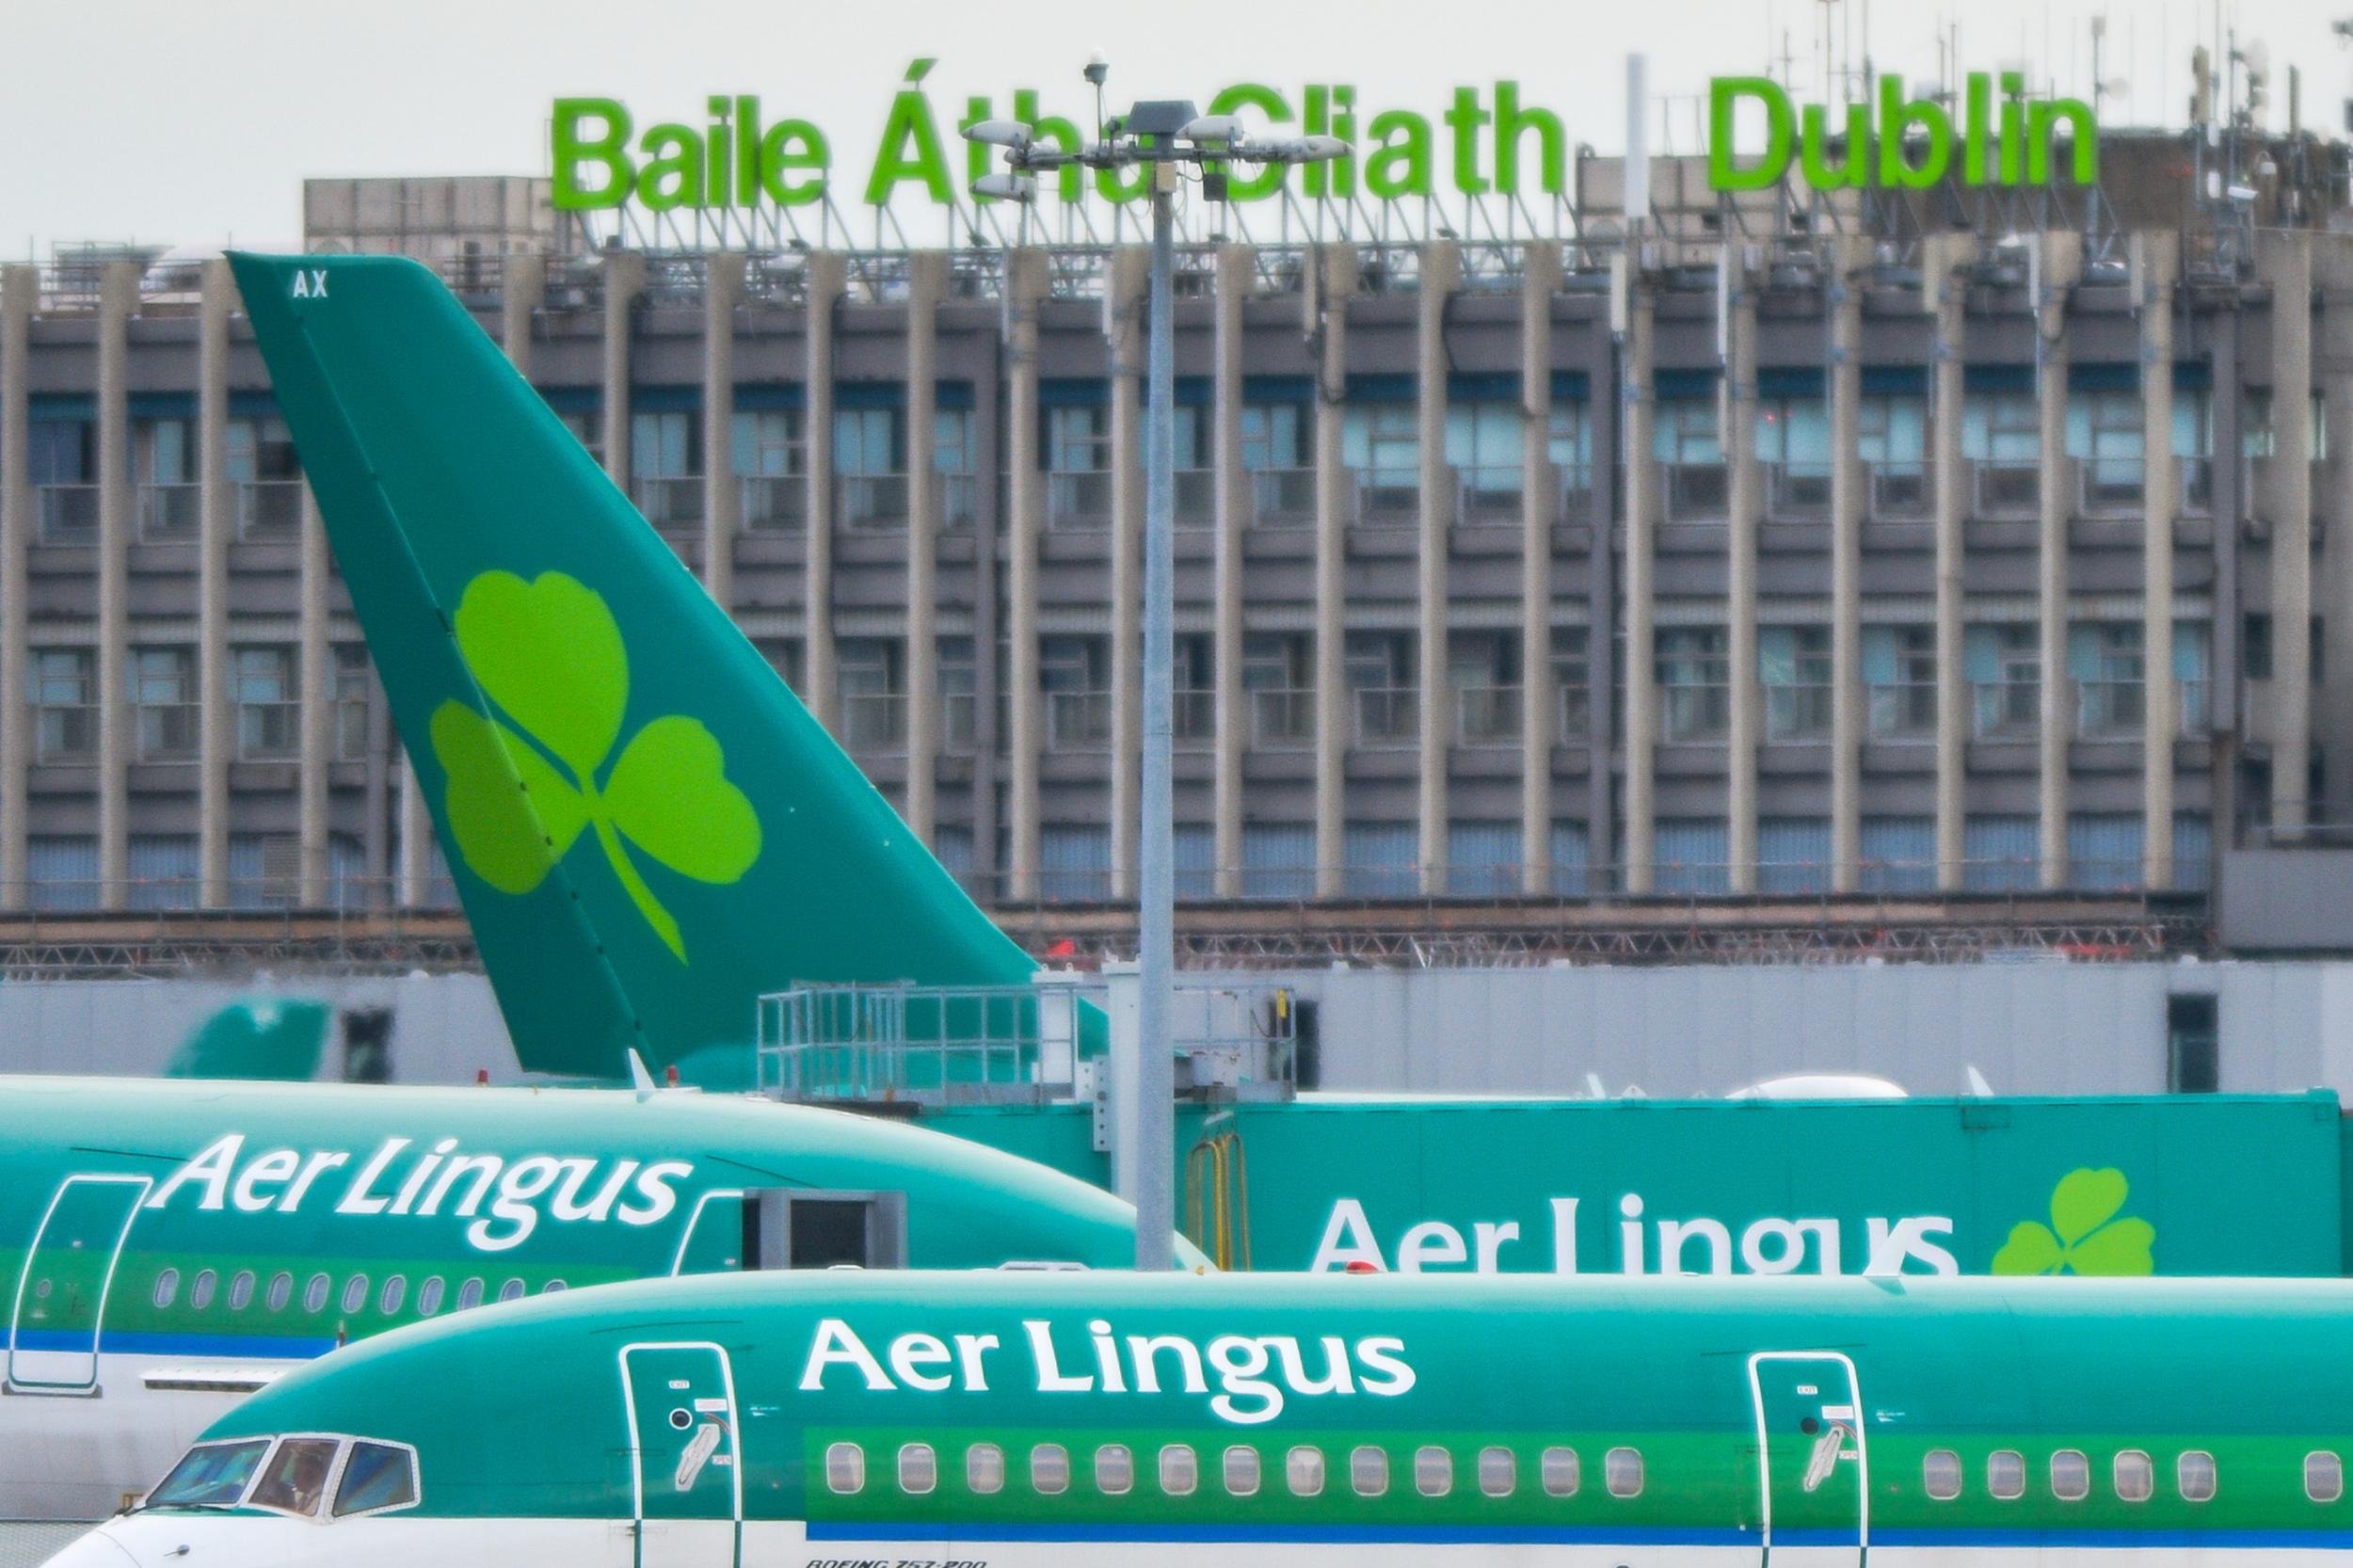 <strong>#1: Aer Lingus</strong>